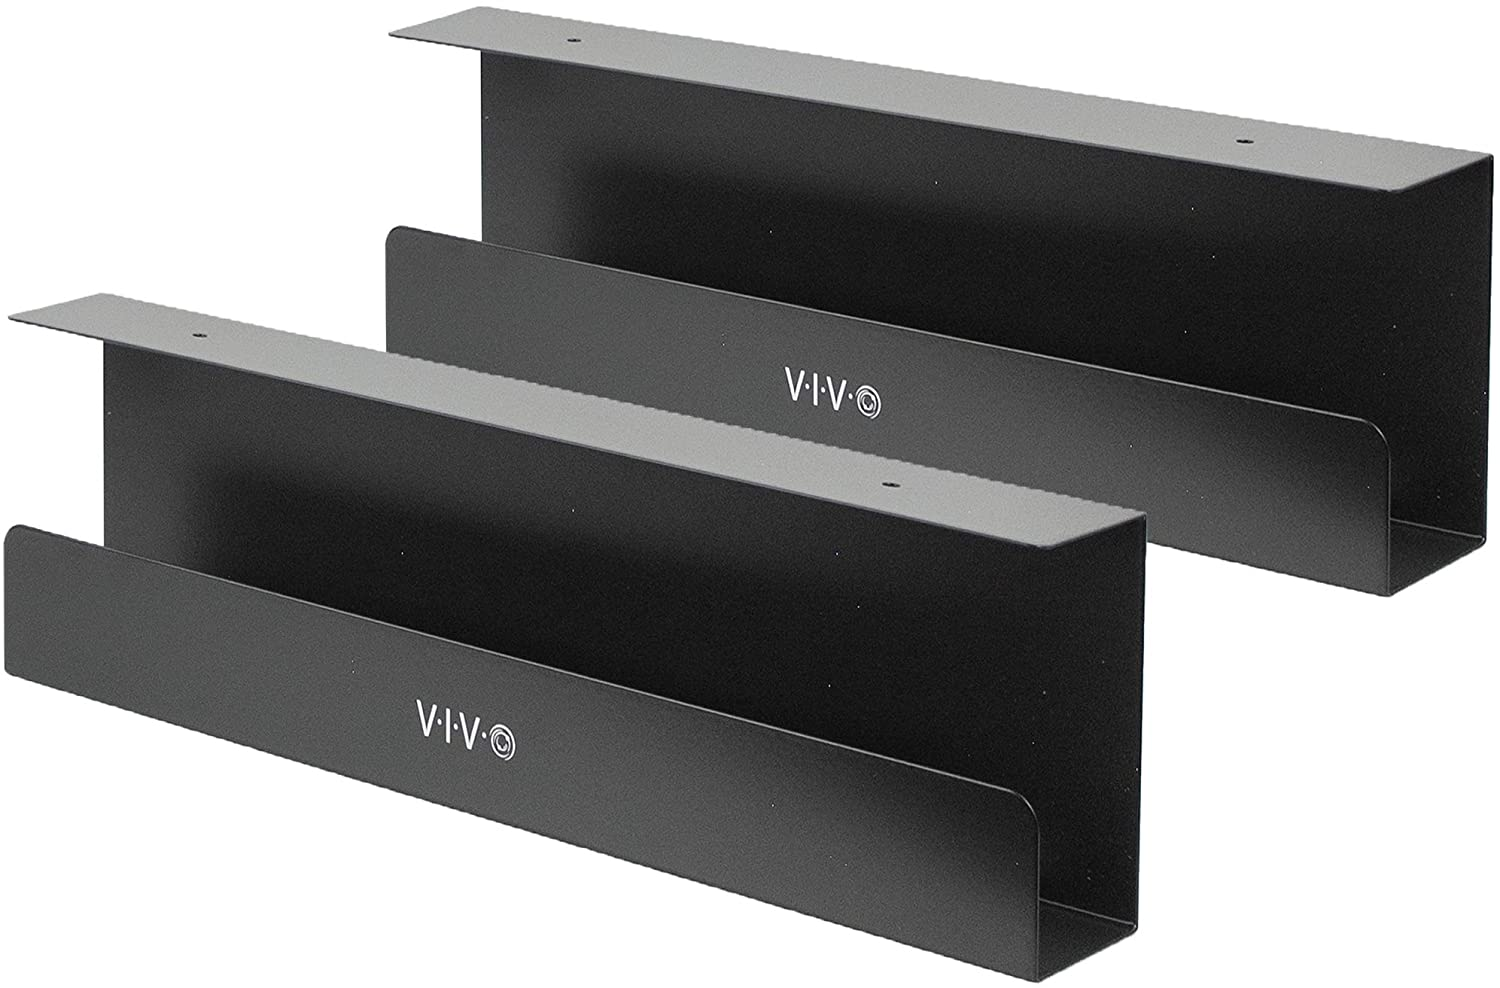 Vivo Under Desk 17 Inch Cable Management Trays Power Strip Holders Cord Organizers Wire Tamers For Office And Home Black 2 Pack Desk Ac06 2c Home Audio Theater